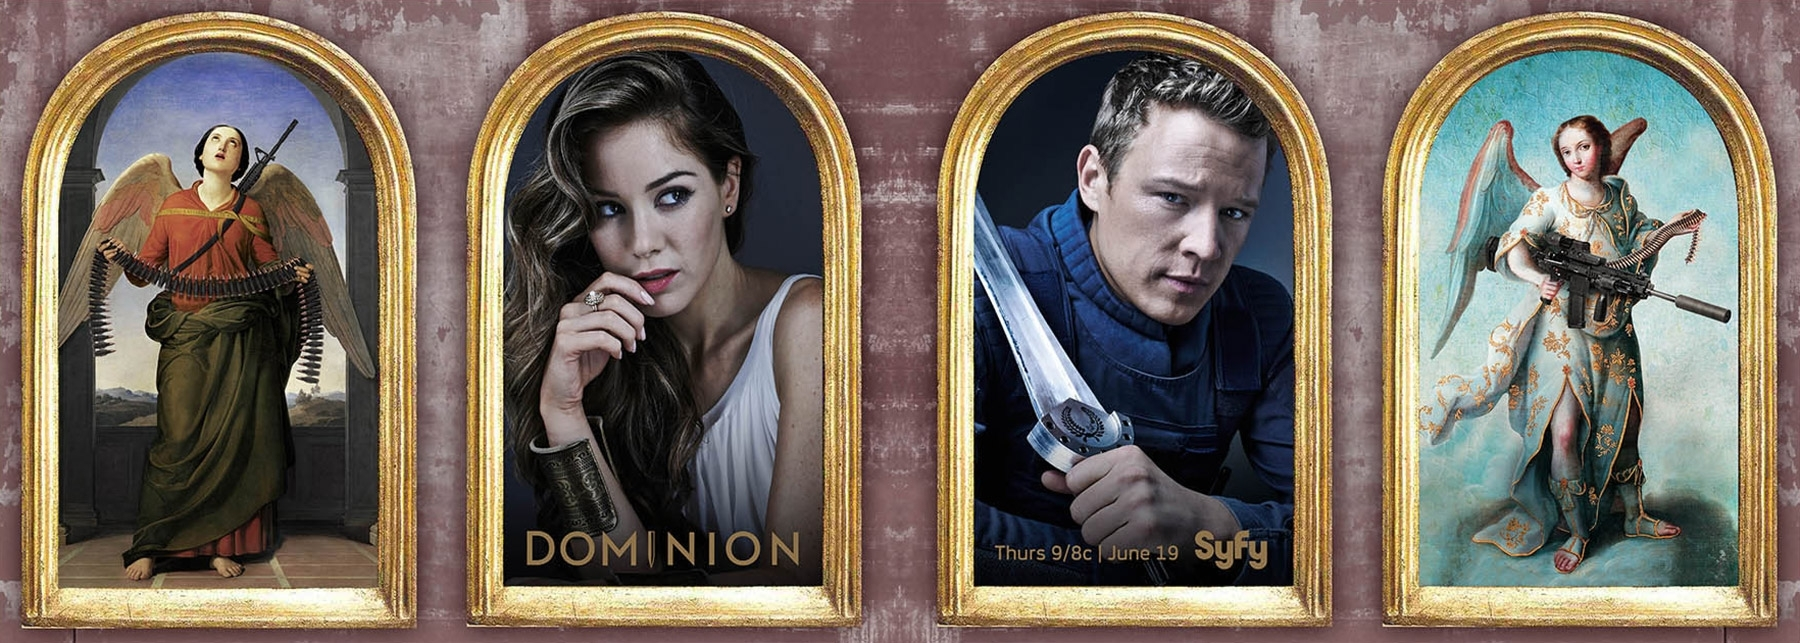 GAVIN BOND SHOOTS POSTERS FOR SYFY'S NEW SHOW, DOMINION